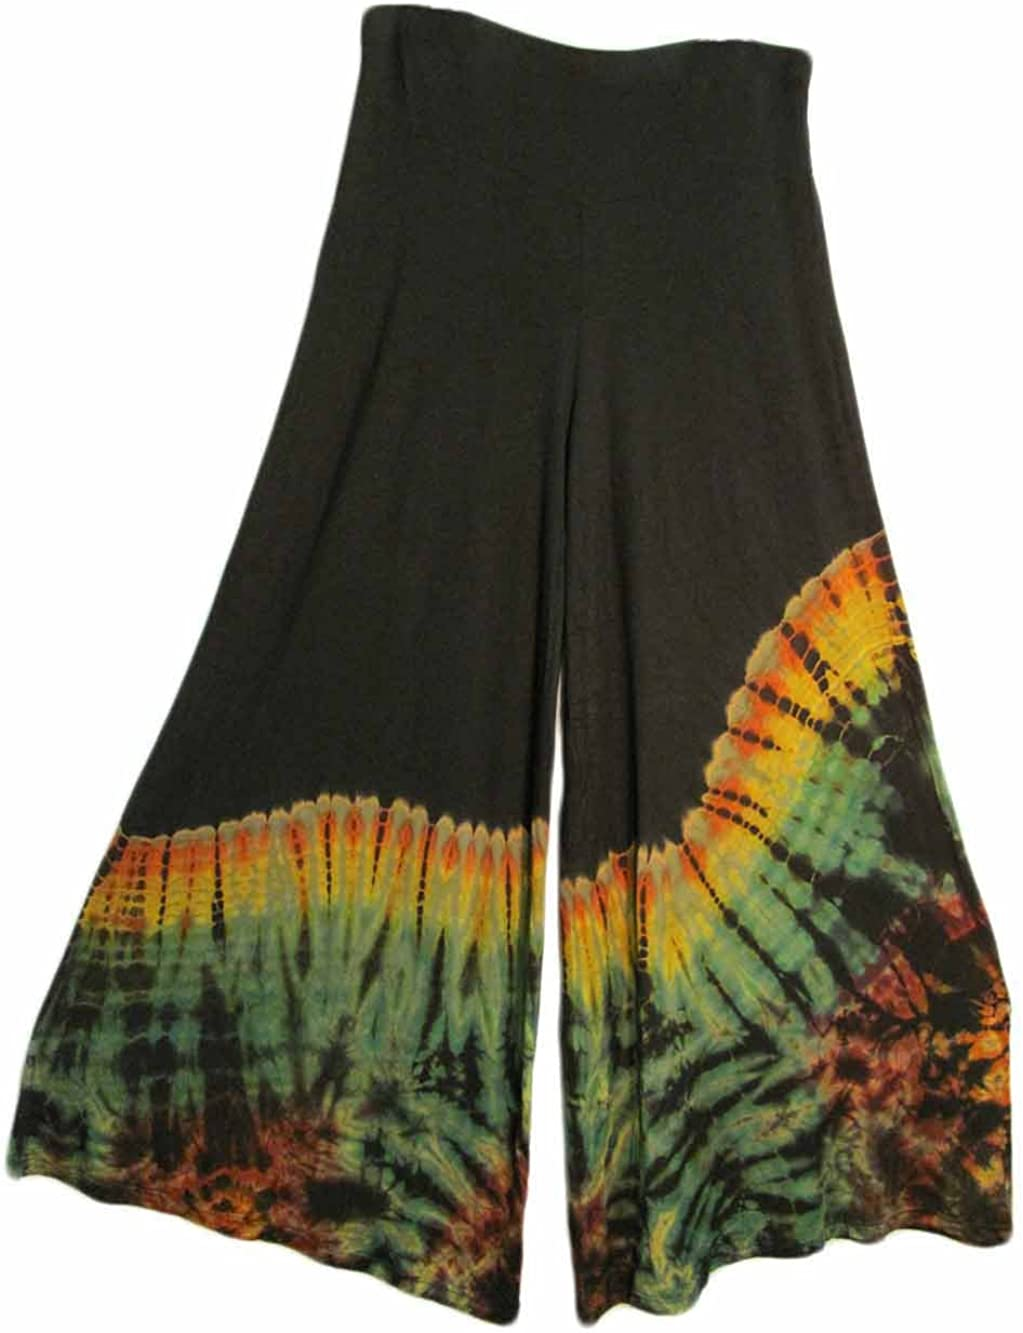 Image of Calipers Missy Spandex Hippie Yoga Clothing Tie-Dye Bell-Bottom Maxi Pants (Black/Green)